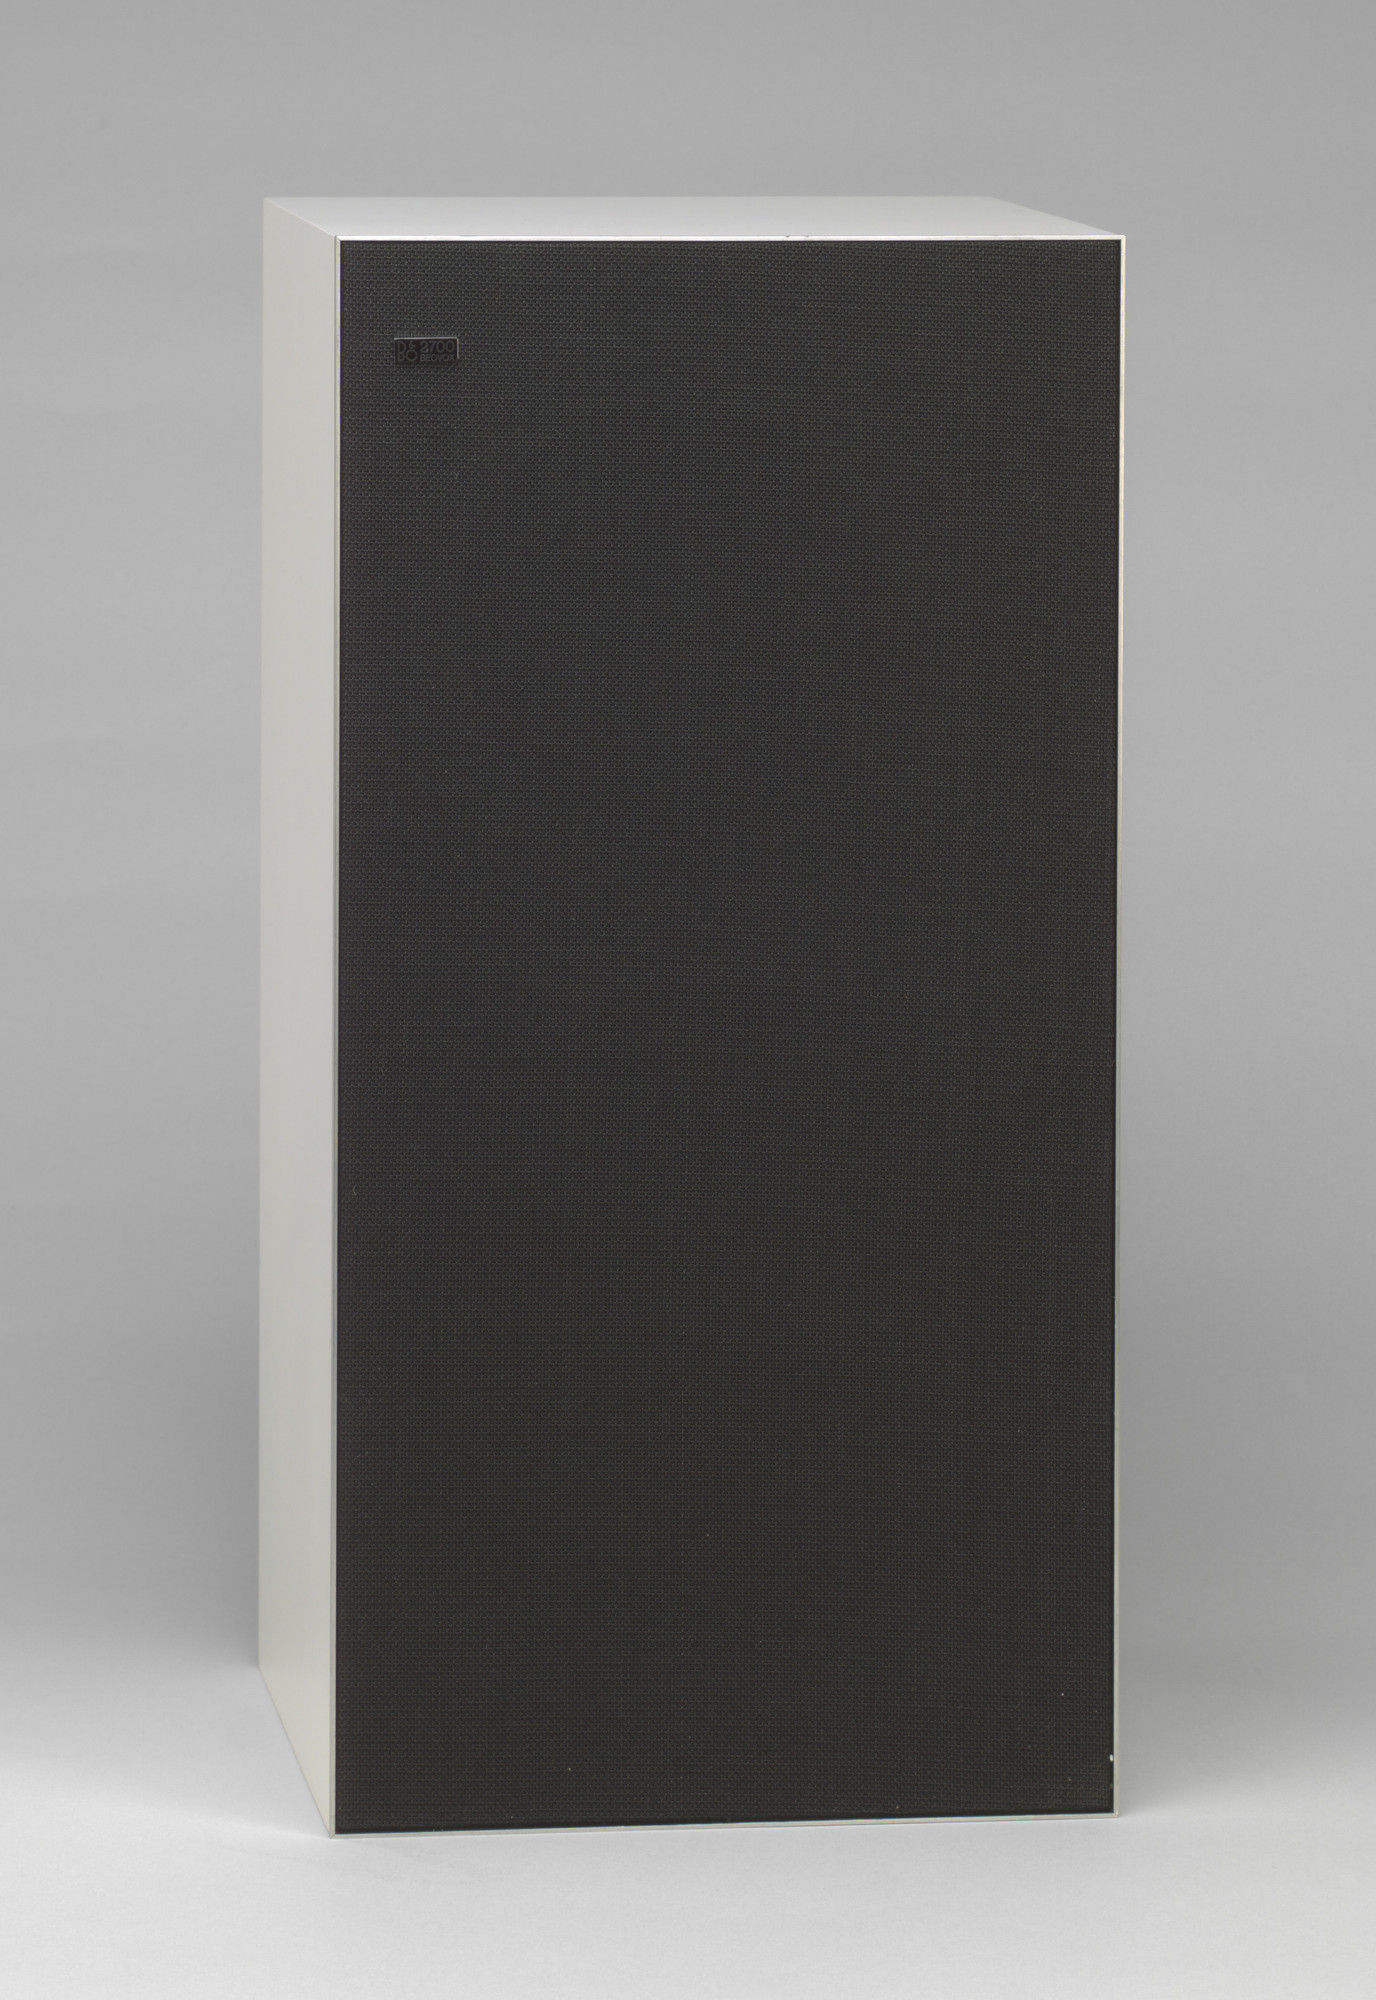 Jacob Jensen. Beovox 2700 Speakers. 1971